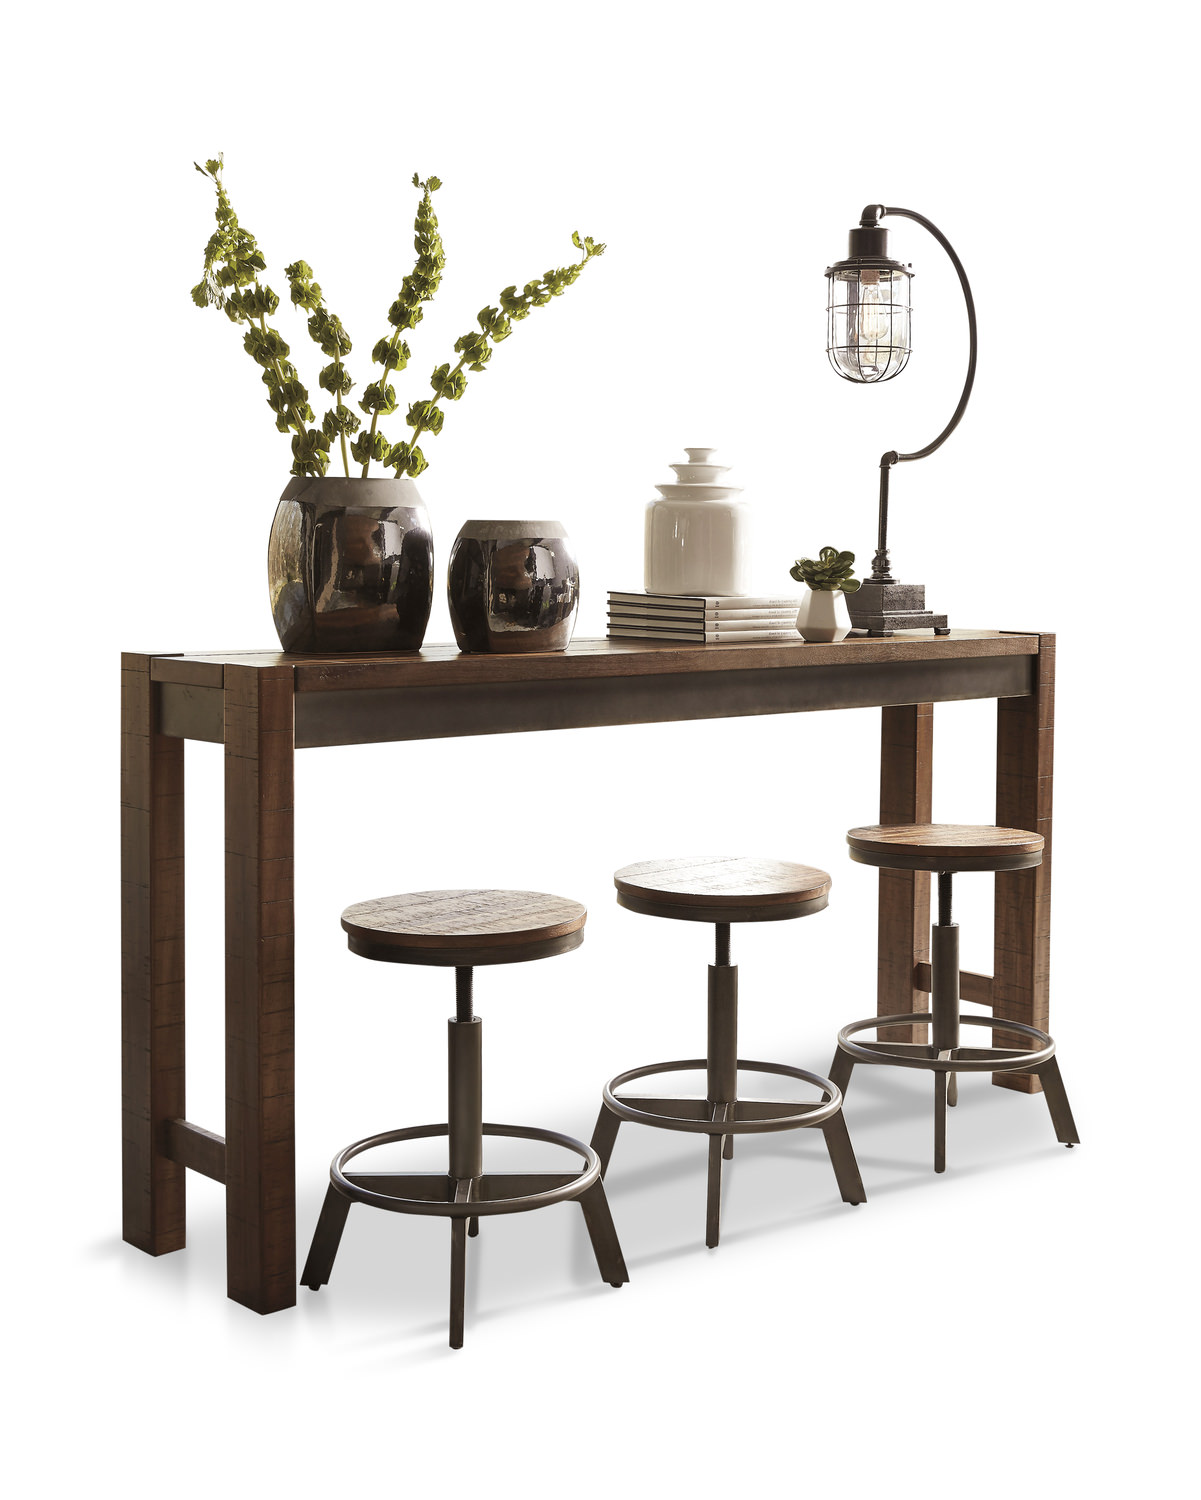 sofa table with stools Torjin XL Sofa Table with 3 Stools | HOM Furniture sofa table with stools